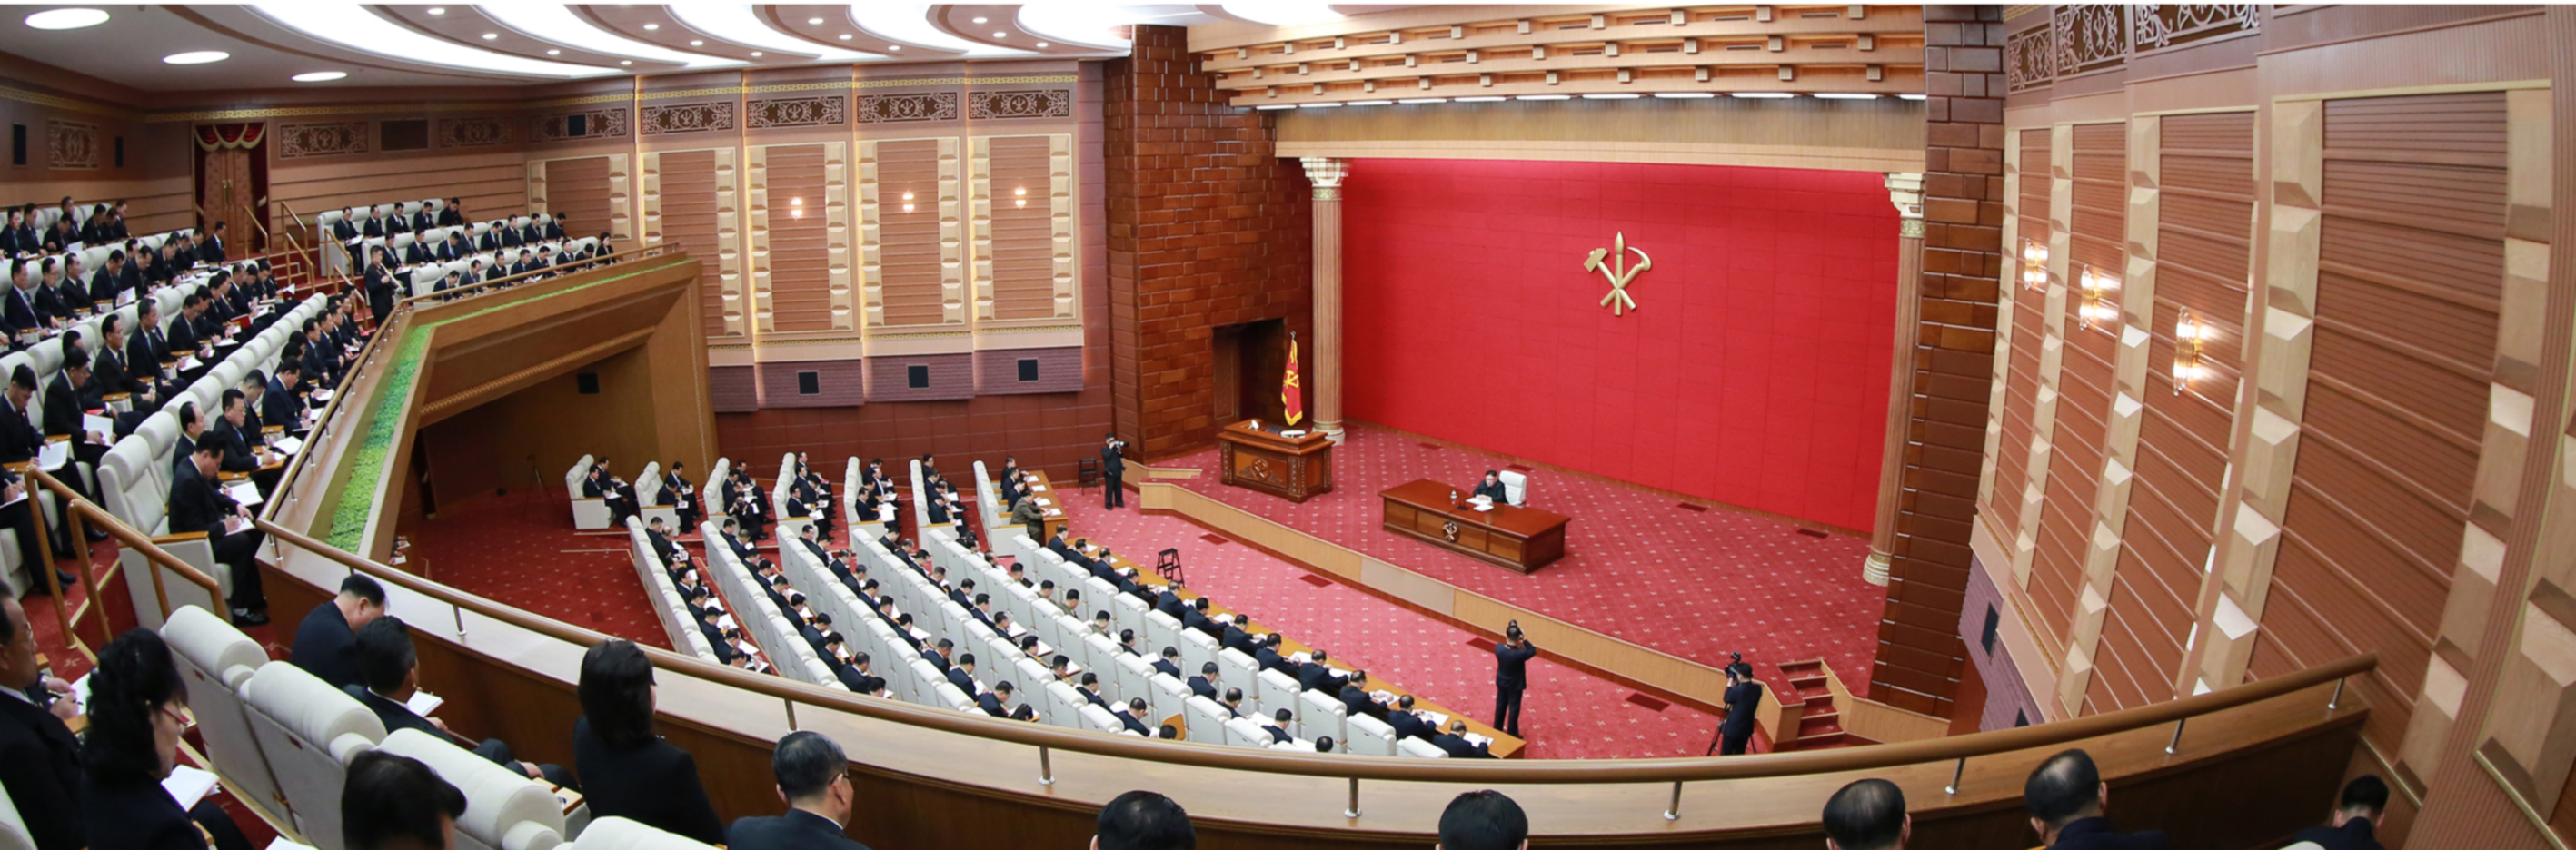 4th Plenum of the the WPK Central Committee Held | North